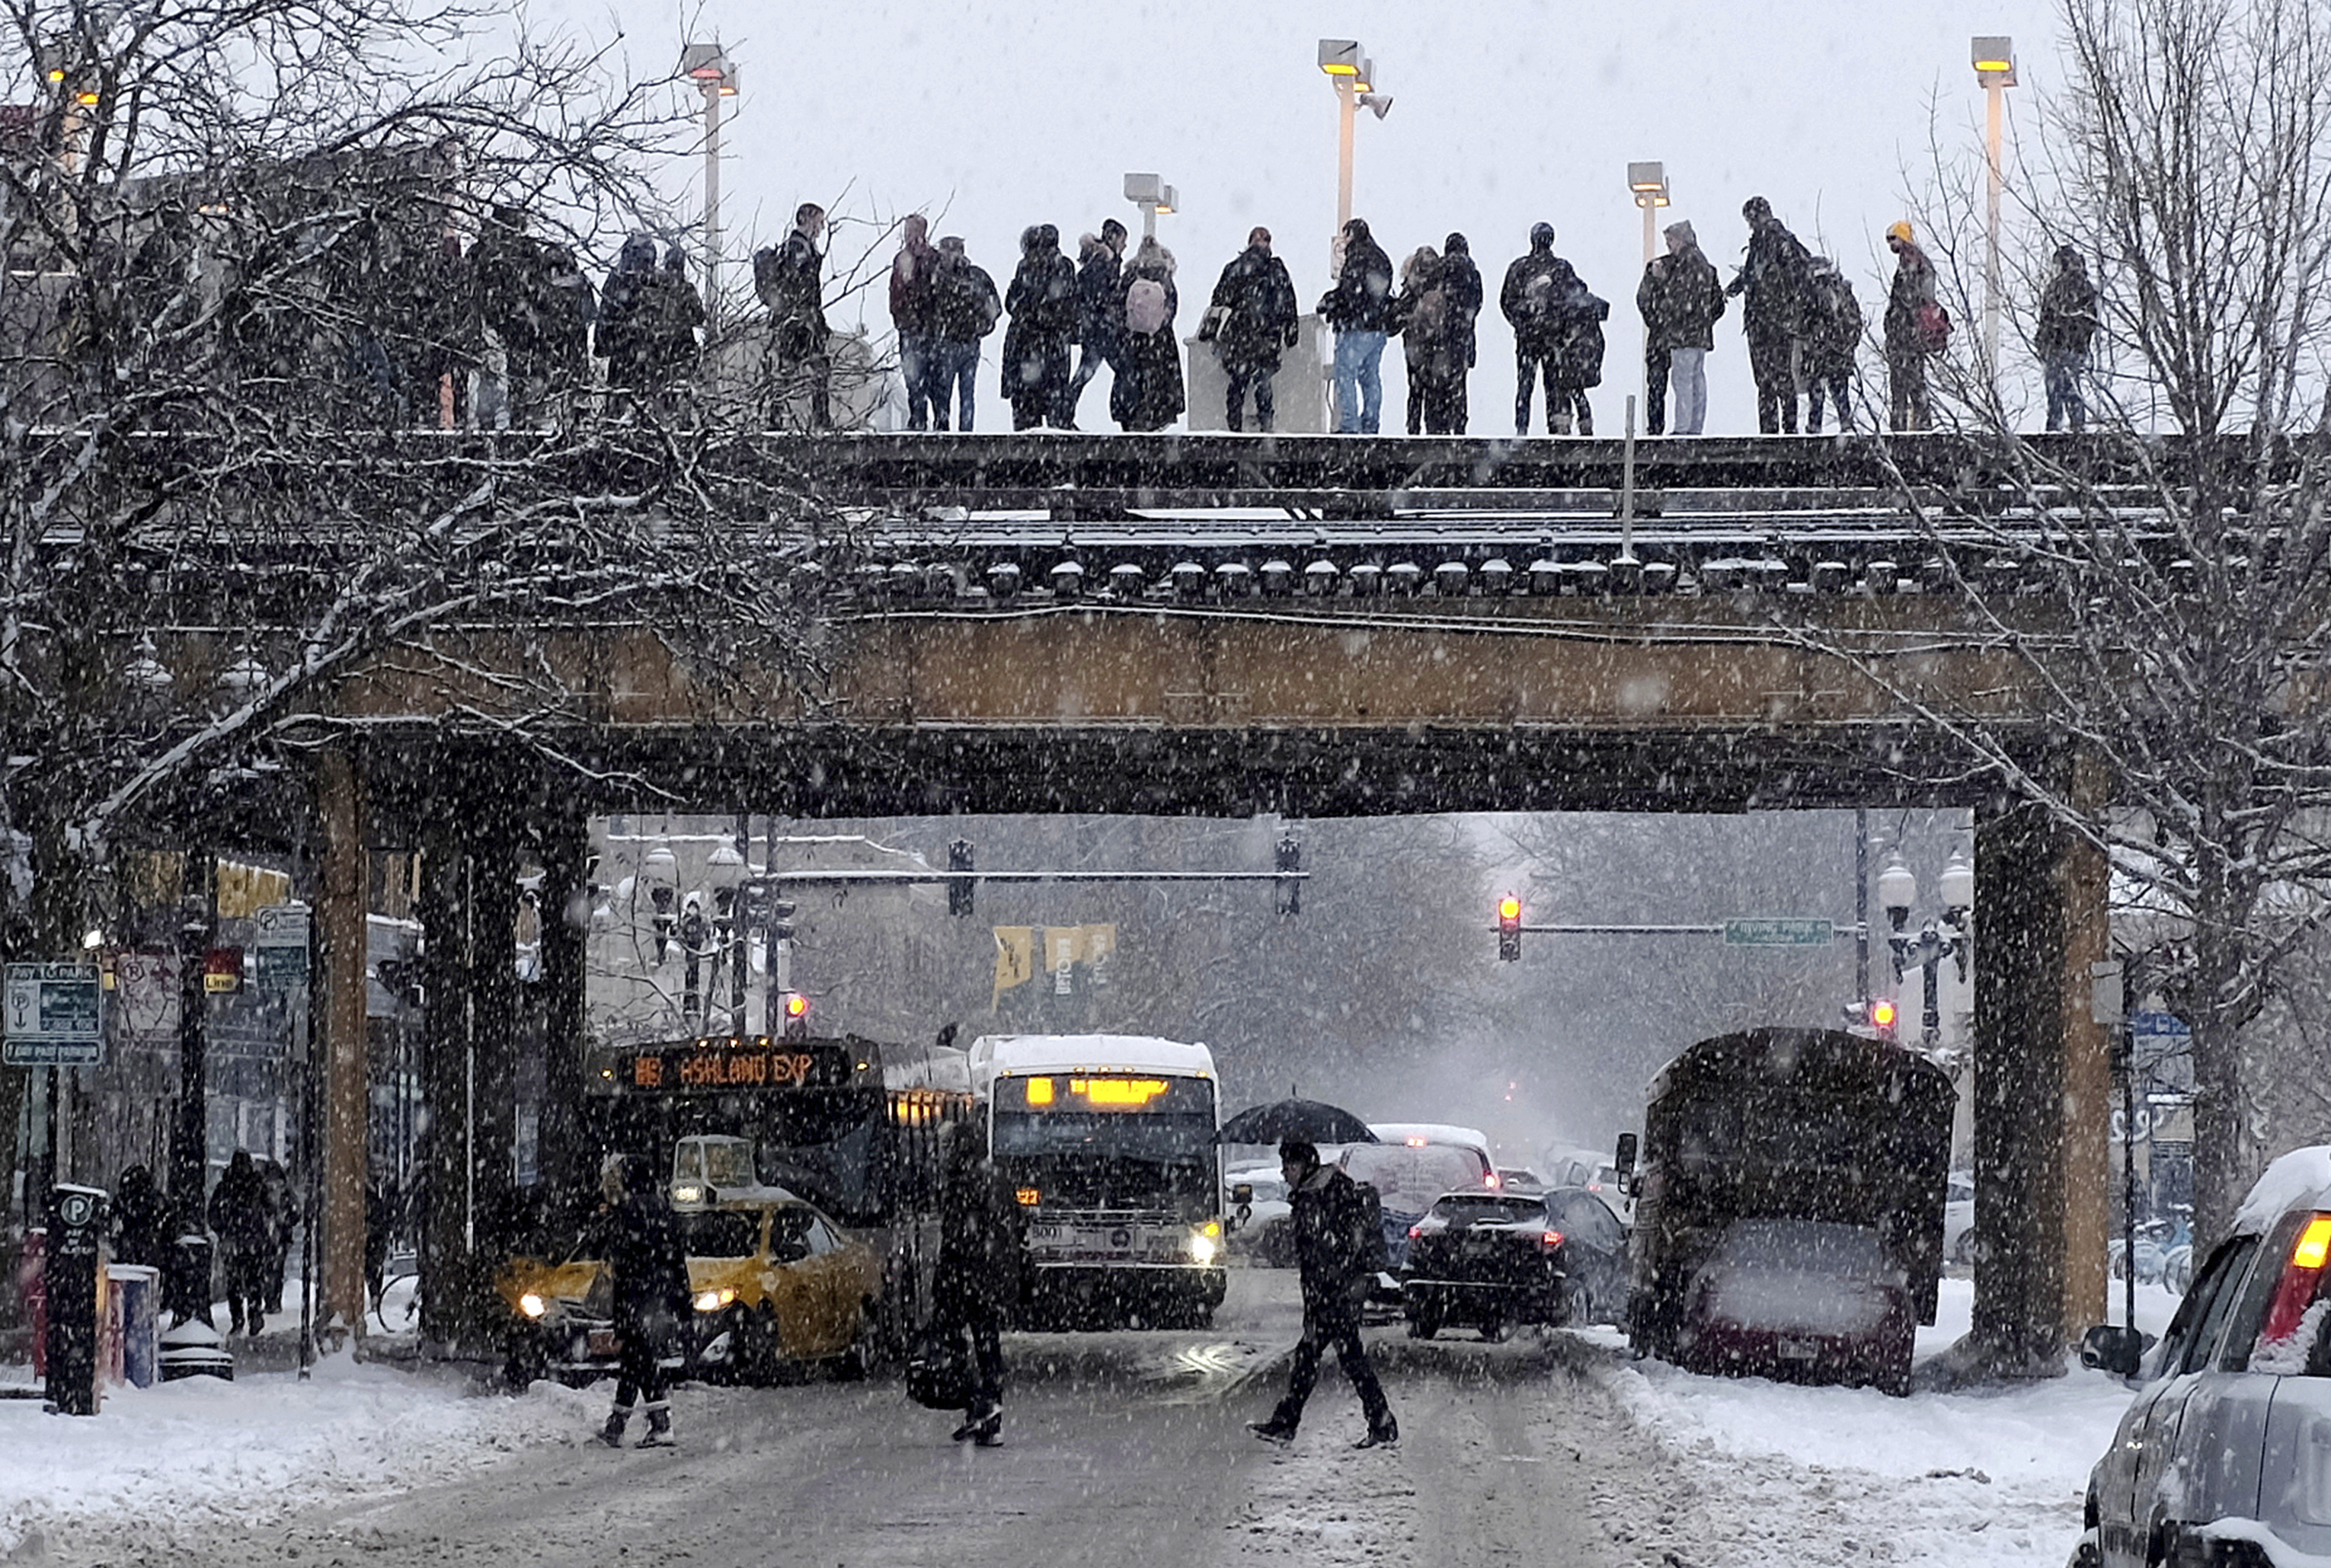 Commuters wait for a train as snow falls Monday in Chicago.